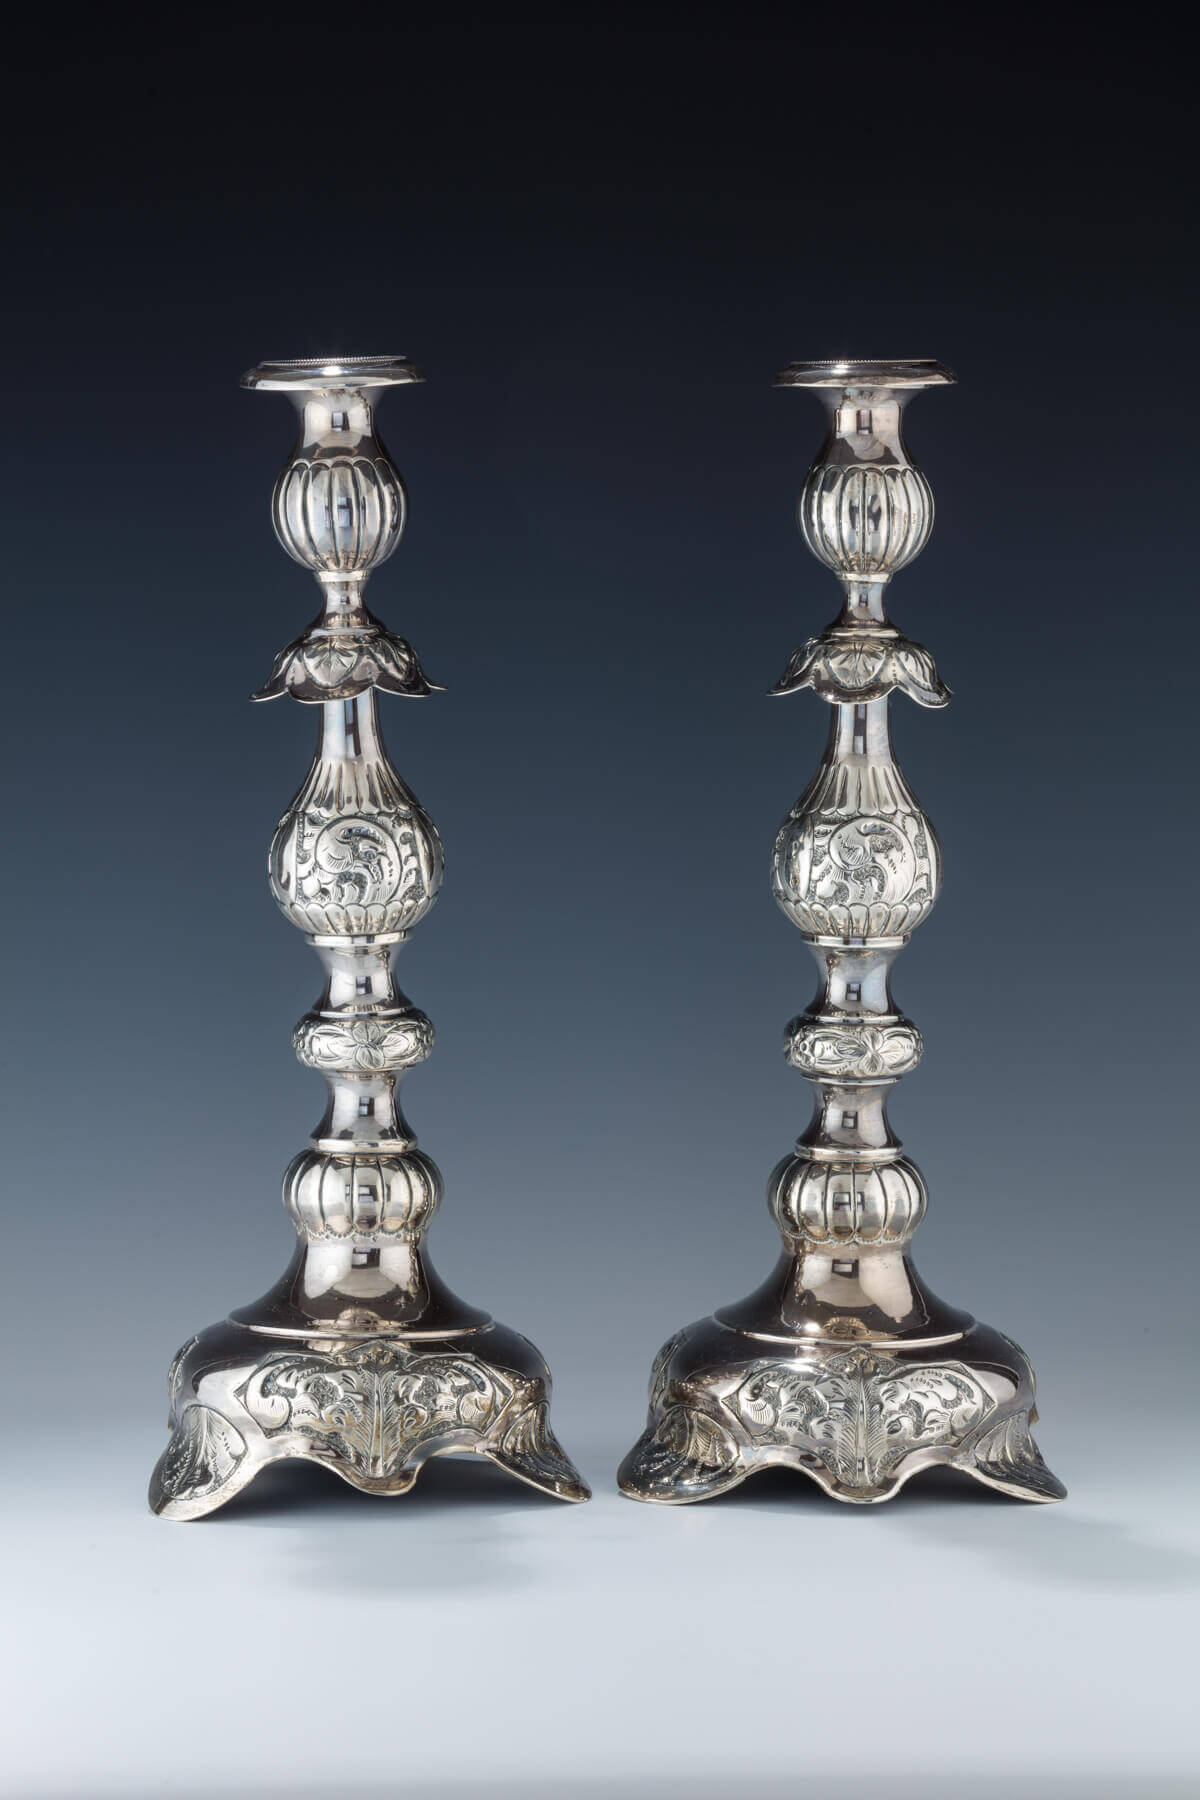 021. FOUR STERLING SILVER SABBATH CANDLESTICKS